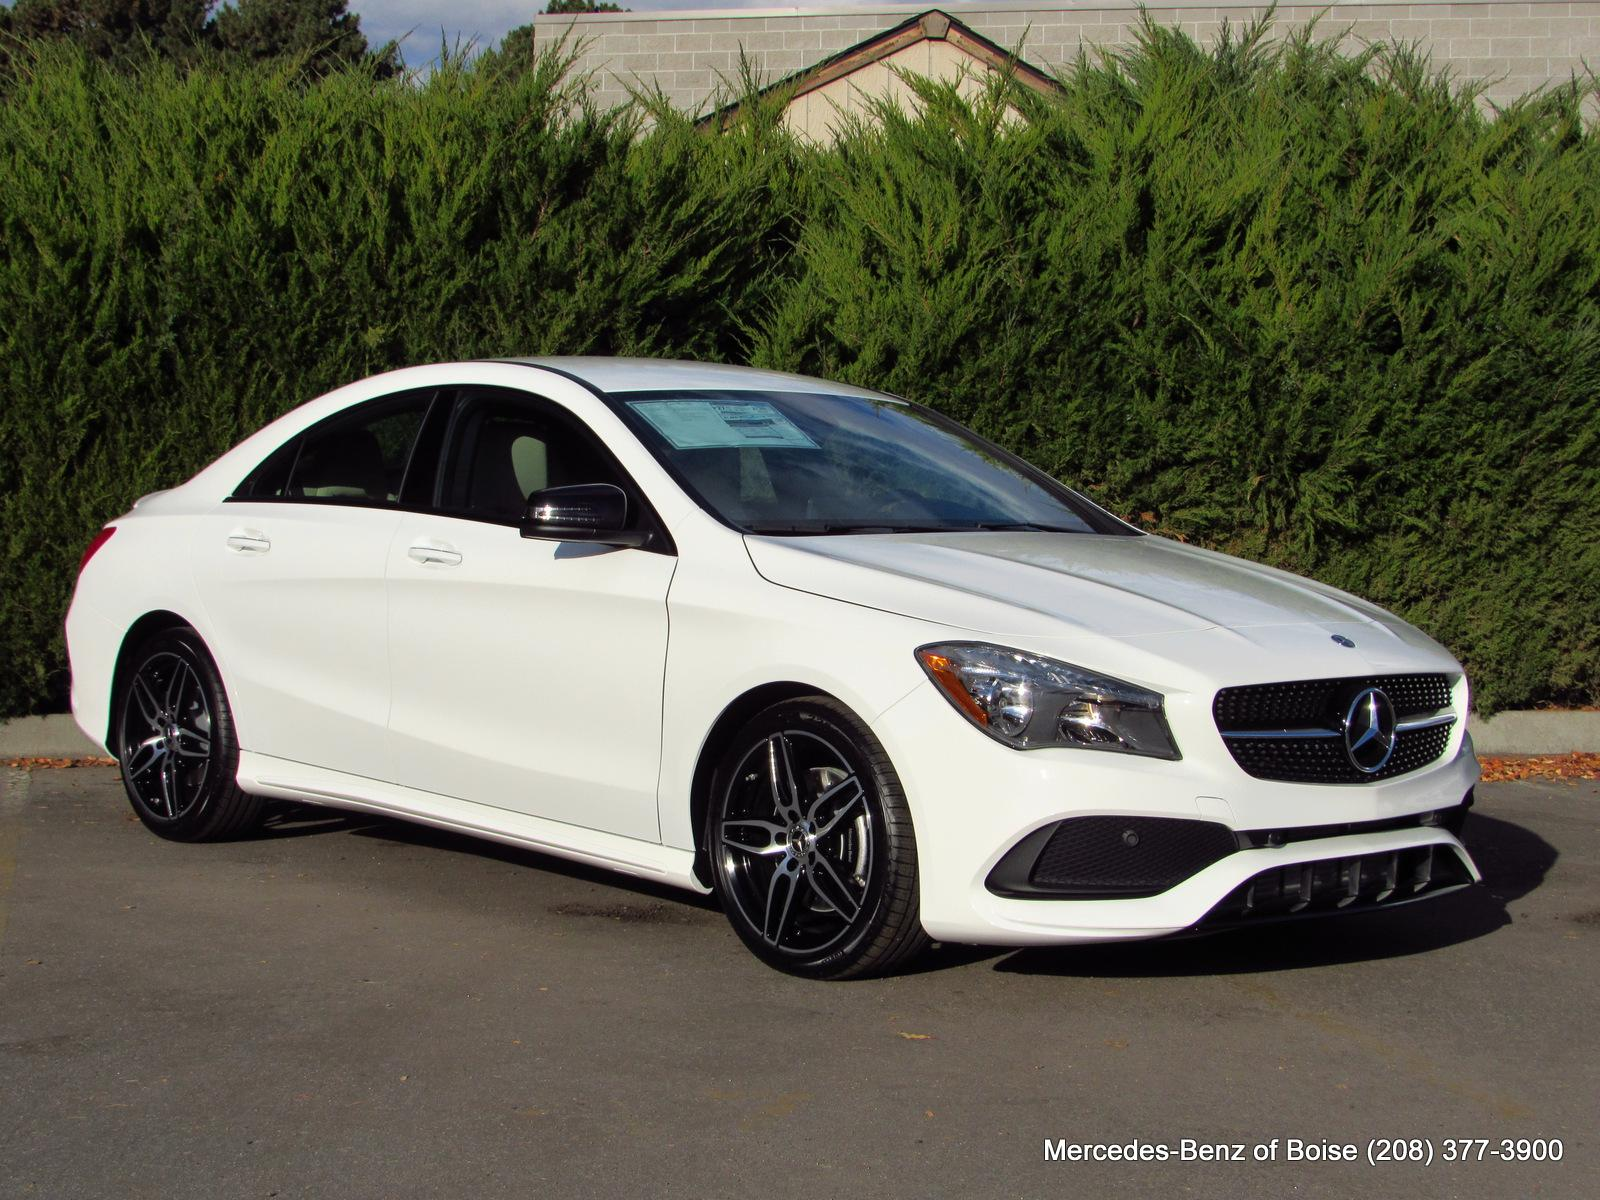 Mercedes Benz Cla >> New 2019 Mercedes Benz Cla Cla 250 4matic Coupe Coupe In Boise